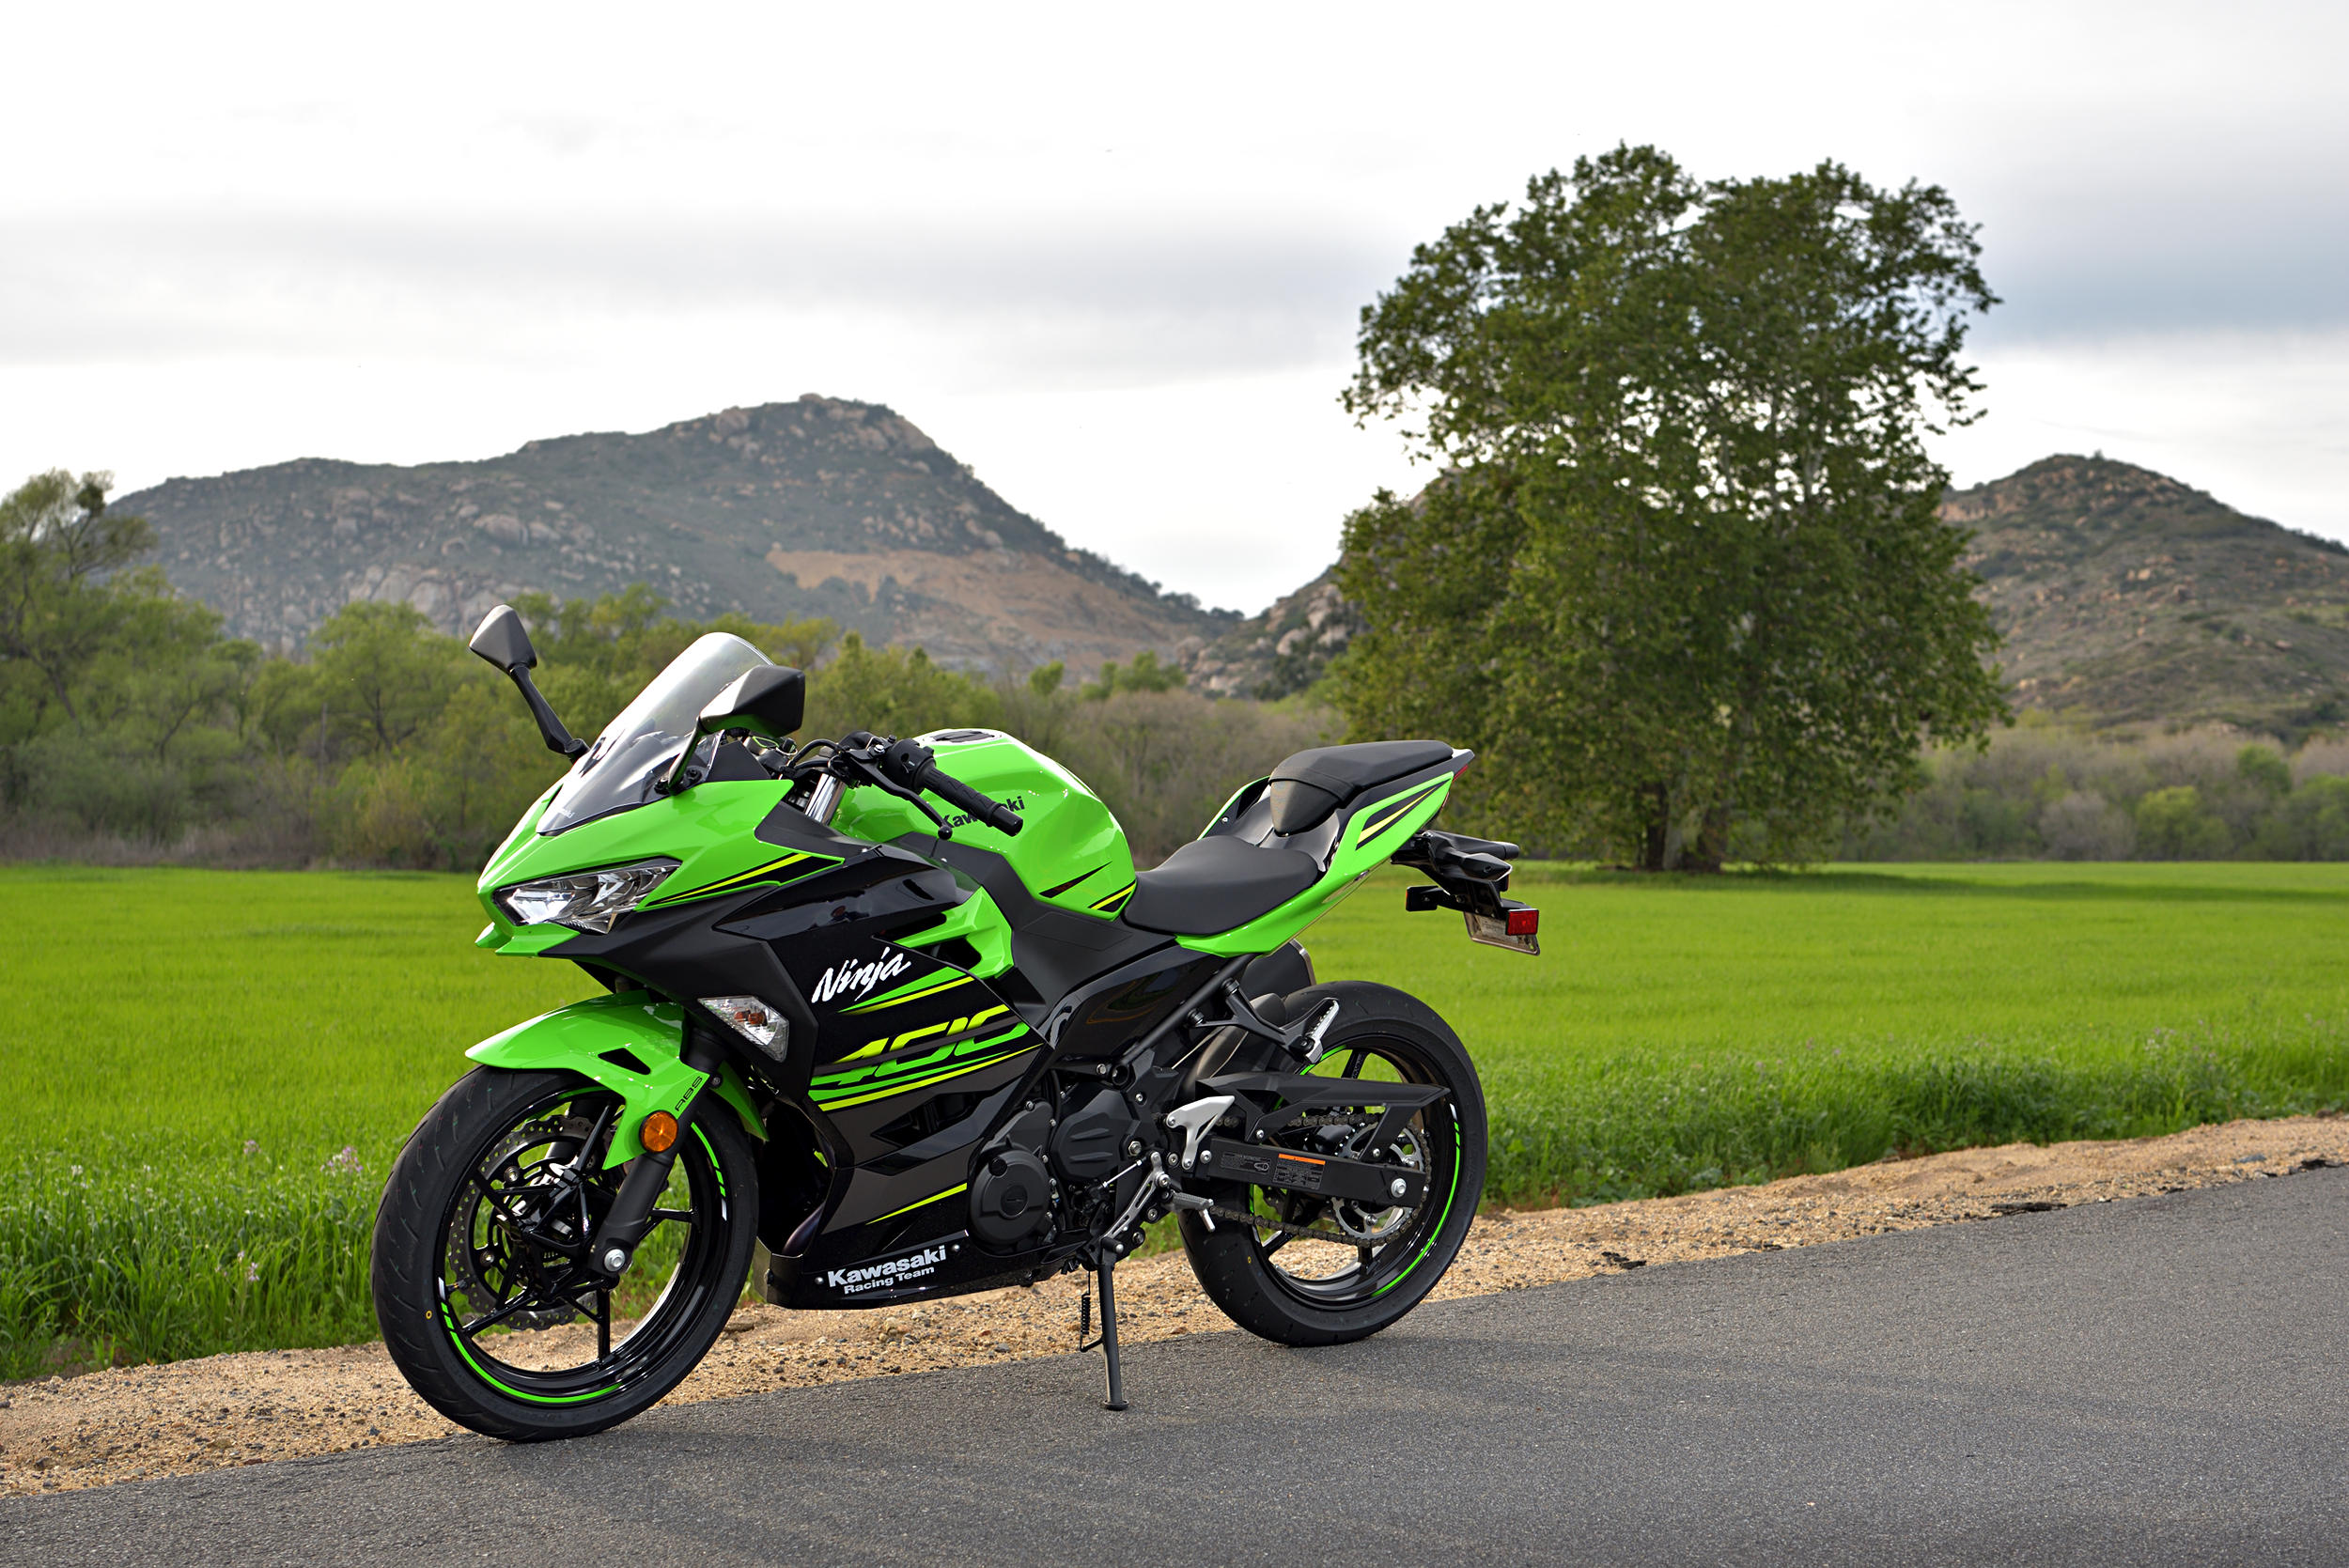 Kawasaki Ninja Abs Review